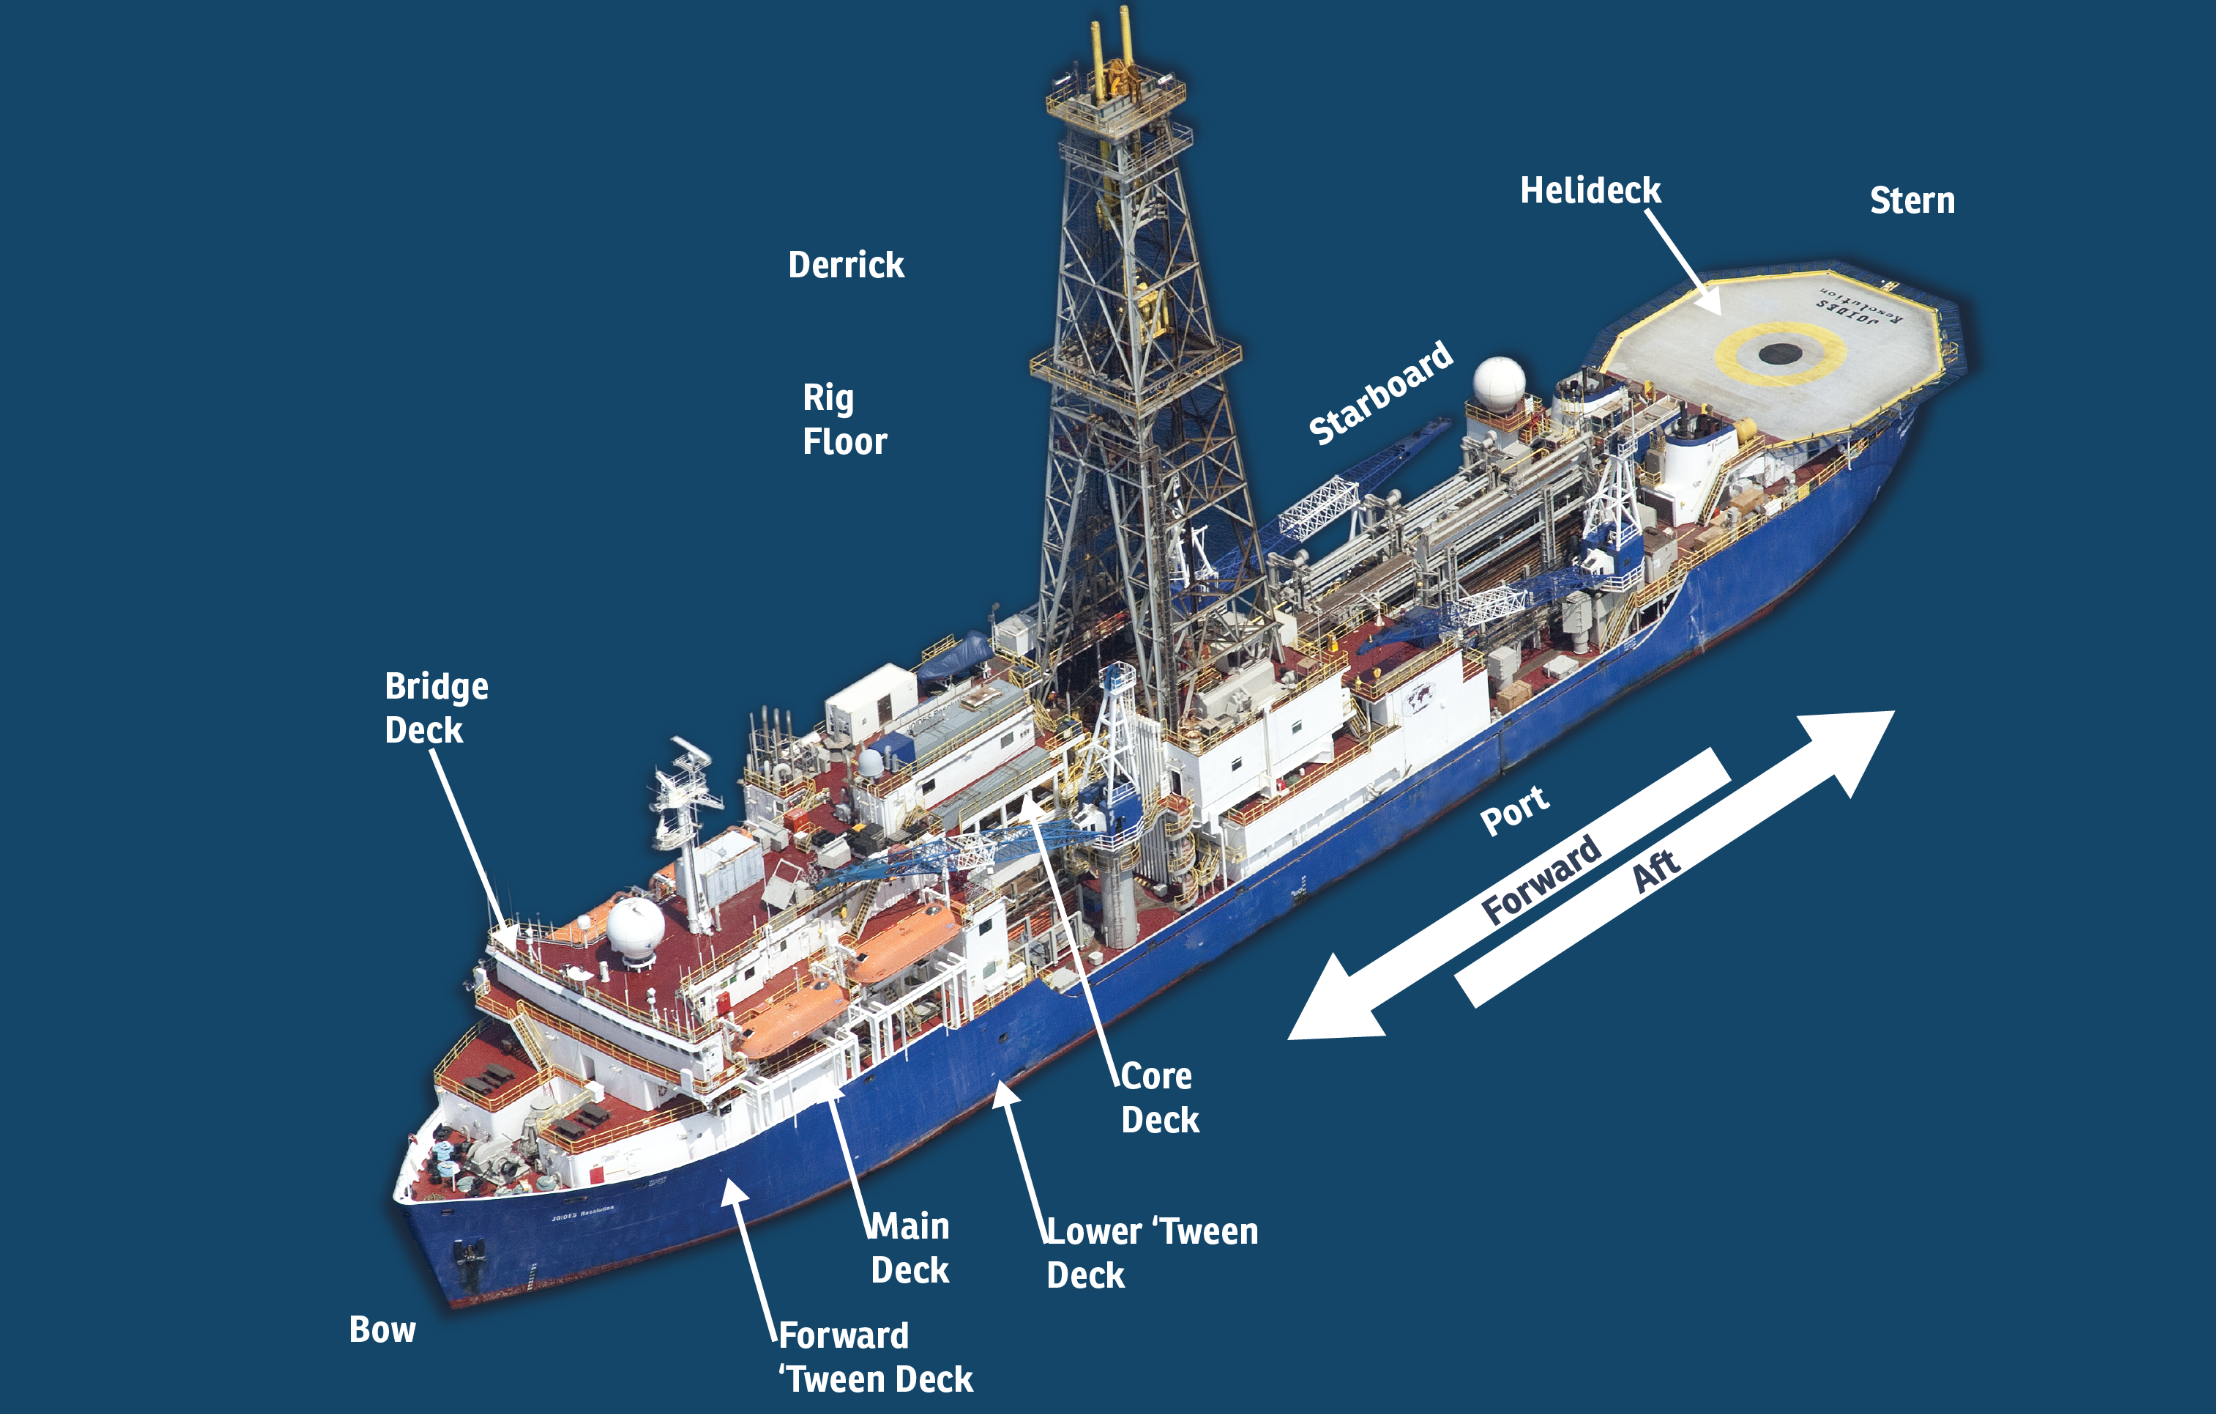 A labeled diagram showing parts of the ship, including the bow, derrick, and bridge